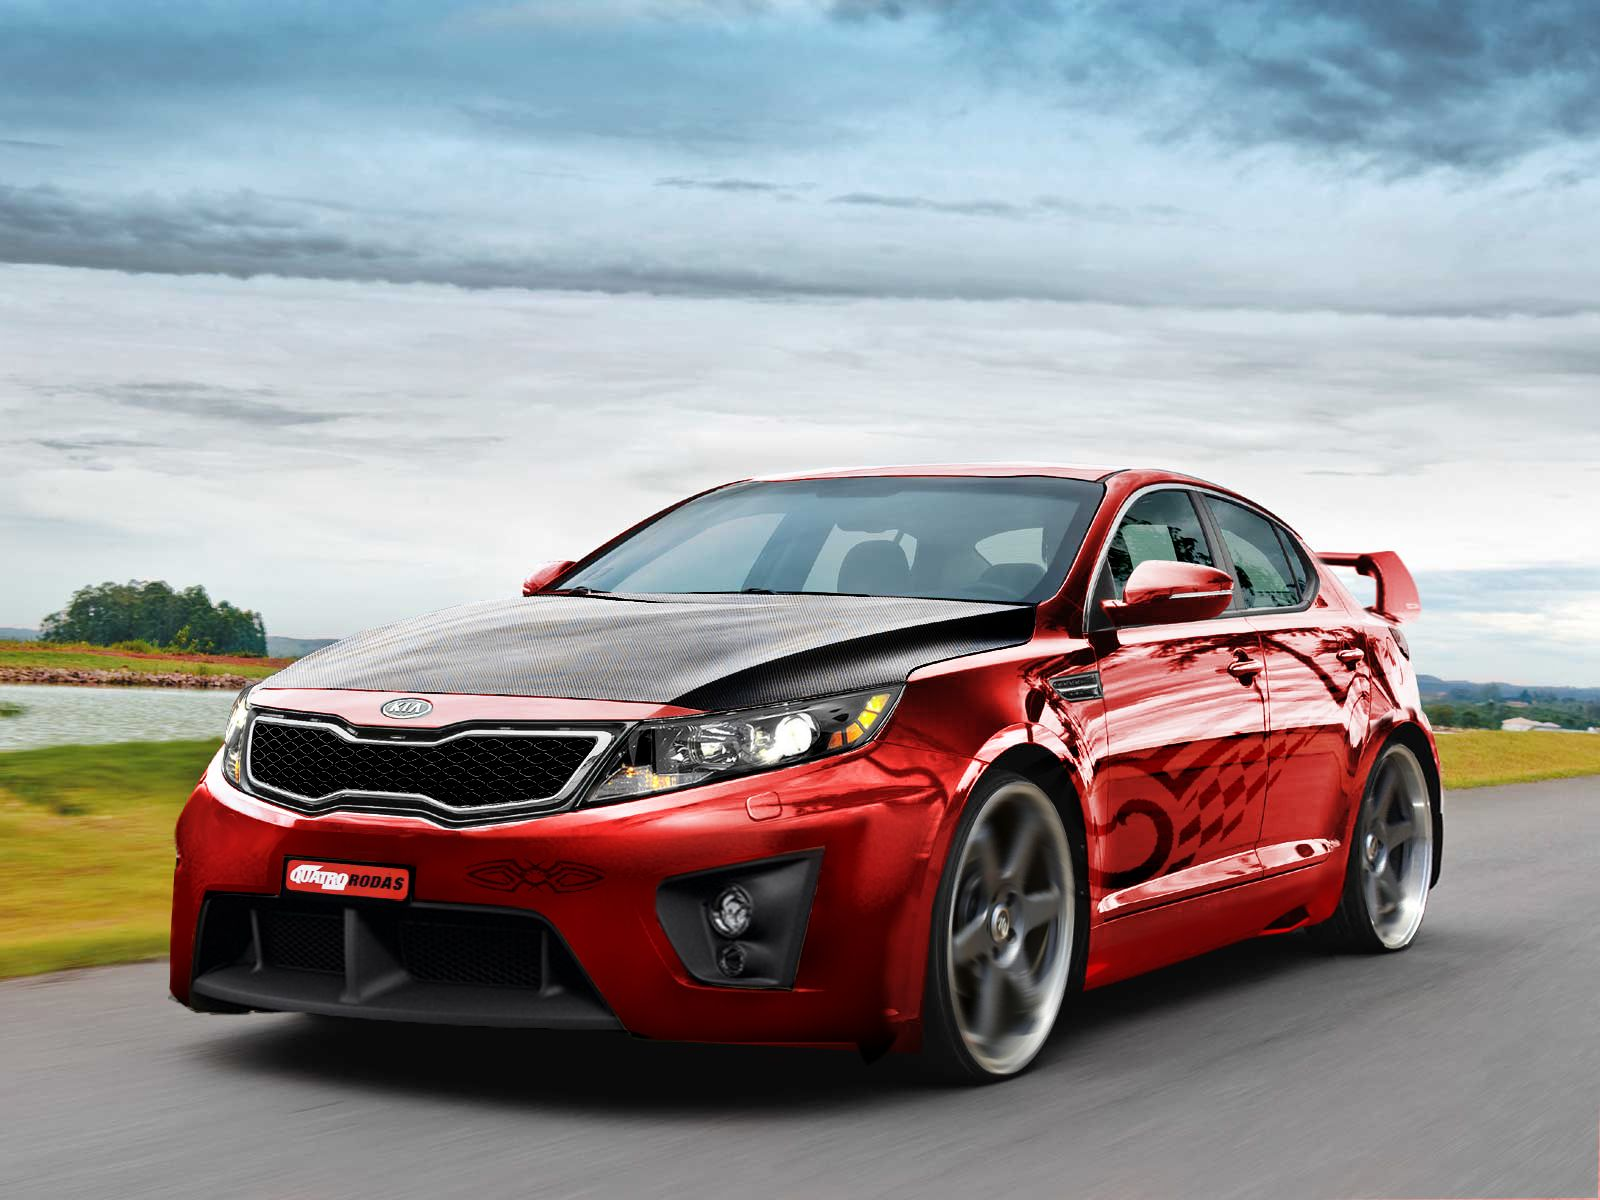 Kia optima kia pinterest kia optima cars and jdm kia optima sciox Images